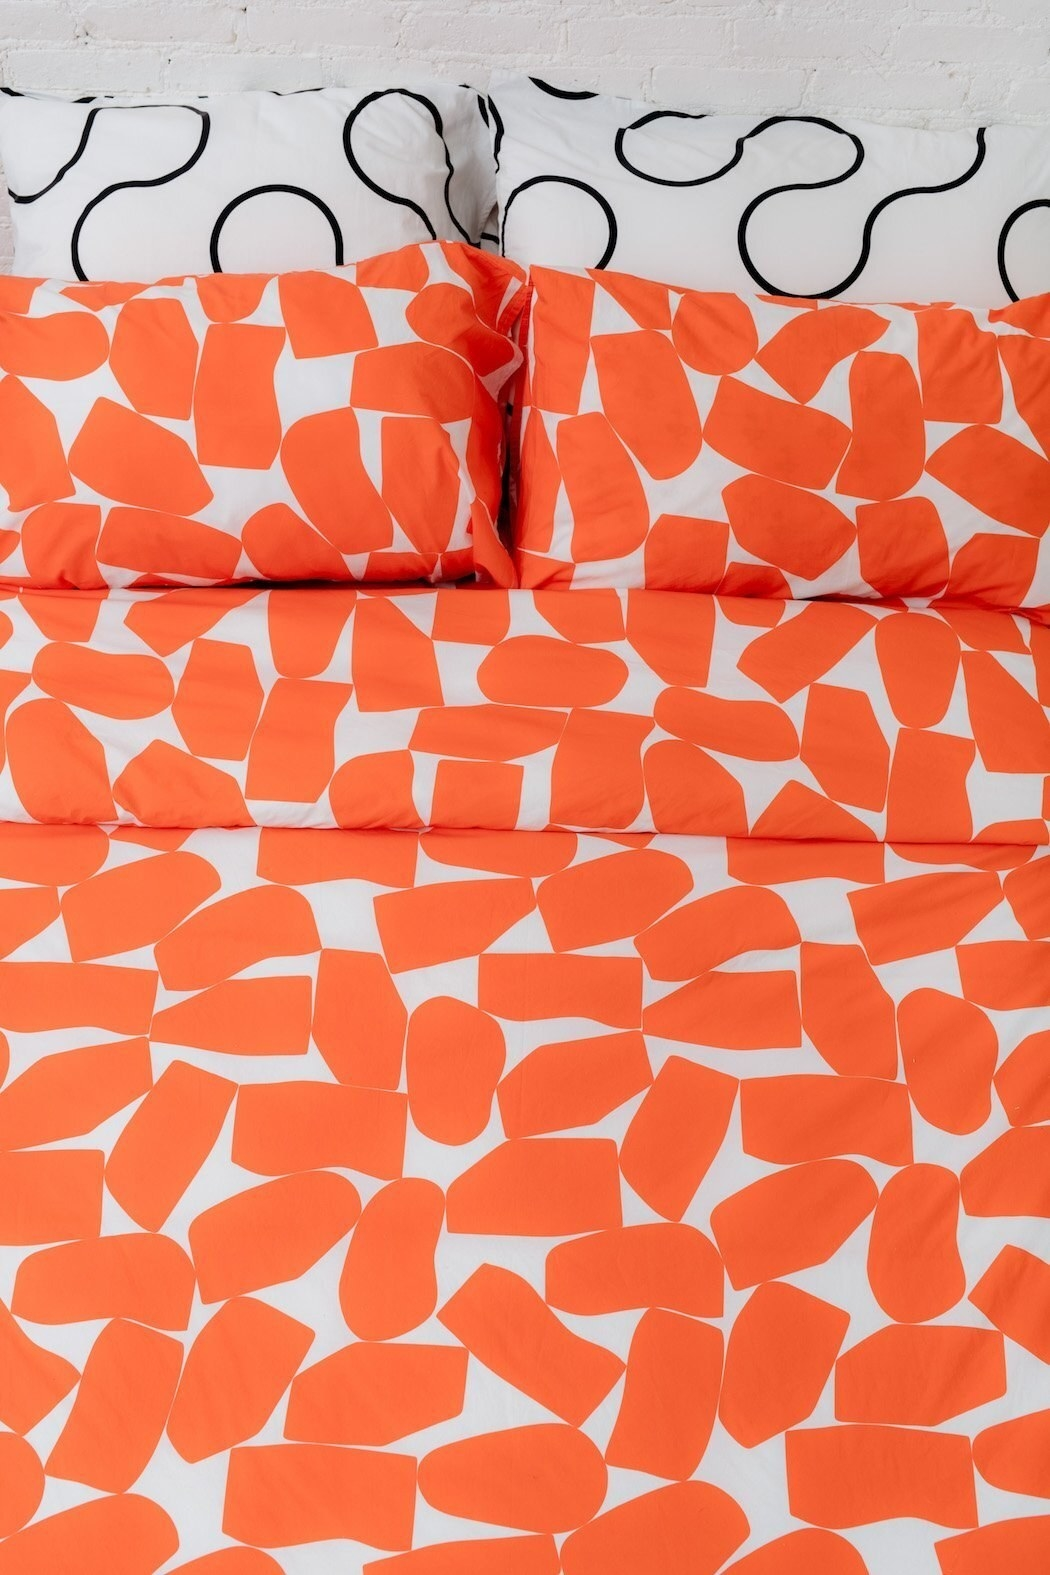 The bedding pattern has abstract rectangles in orange